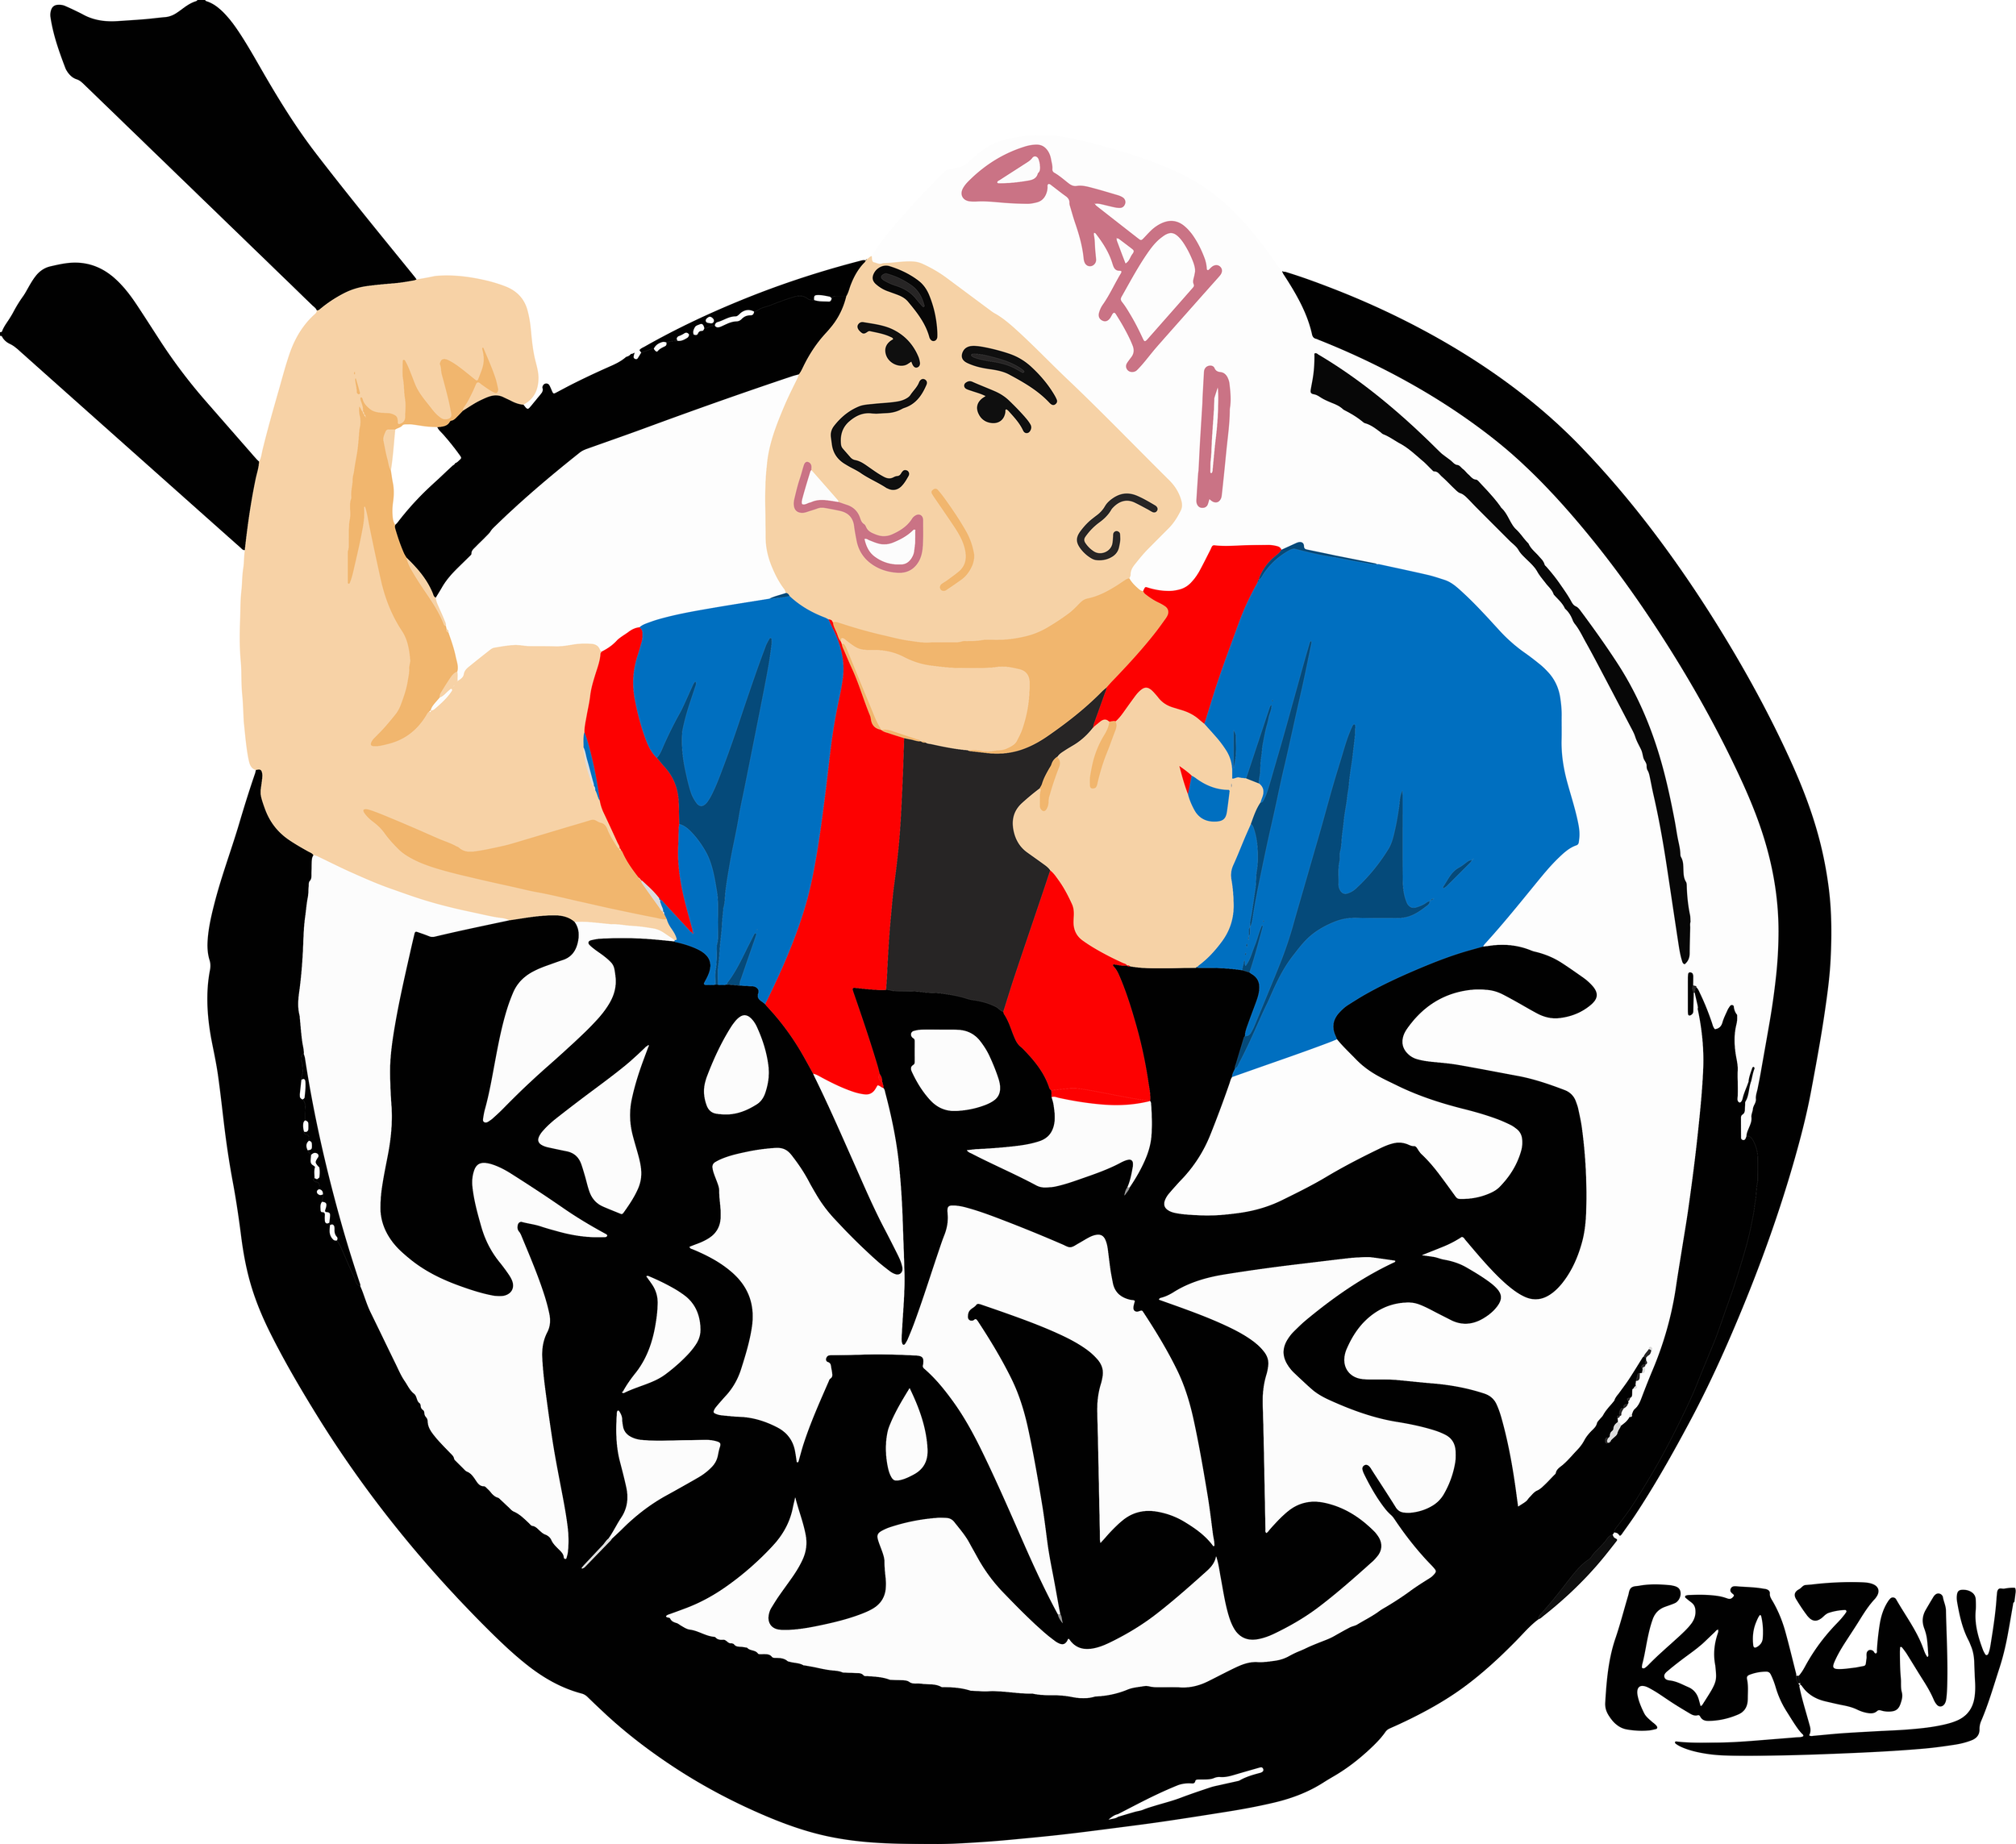 Karls Balls OFFICIAL LOGO (VECTOR FILE).png